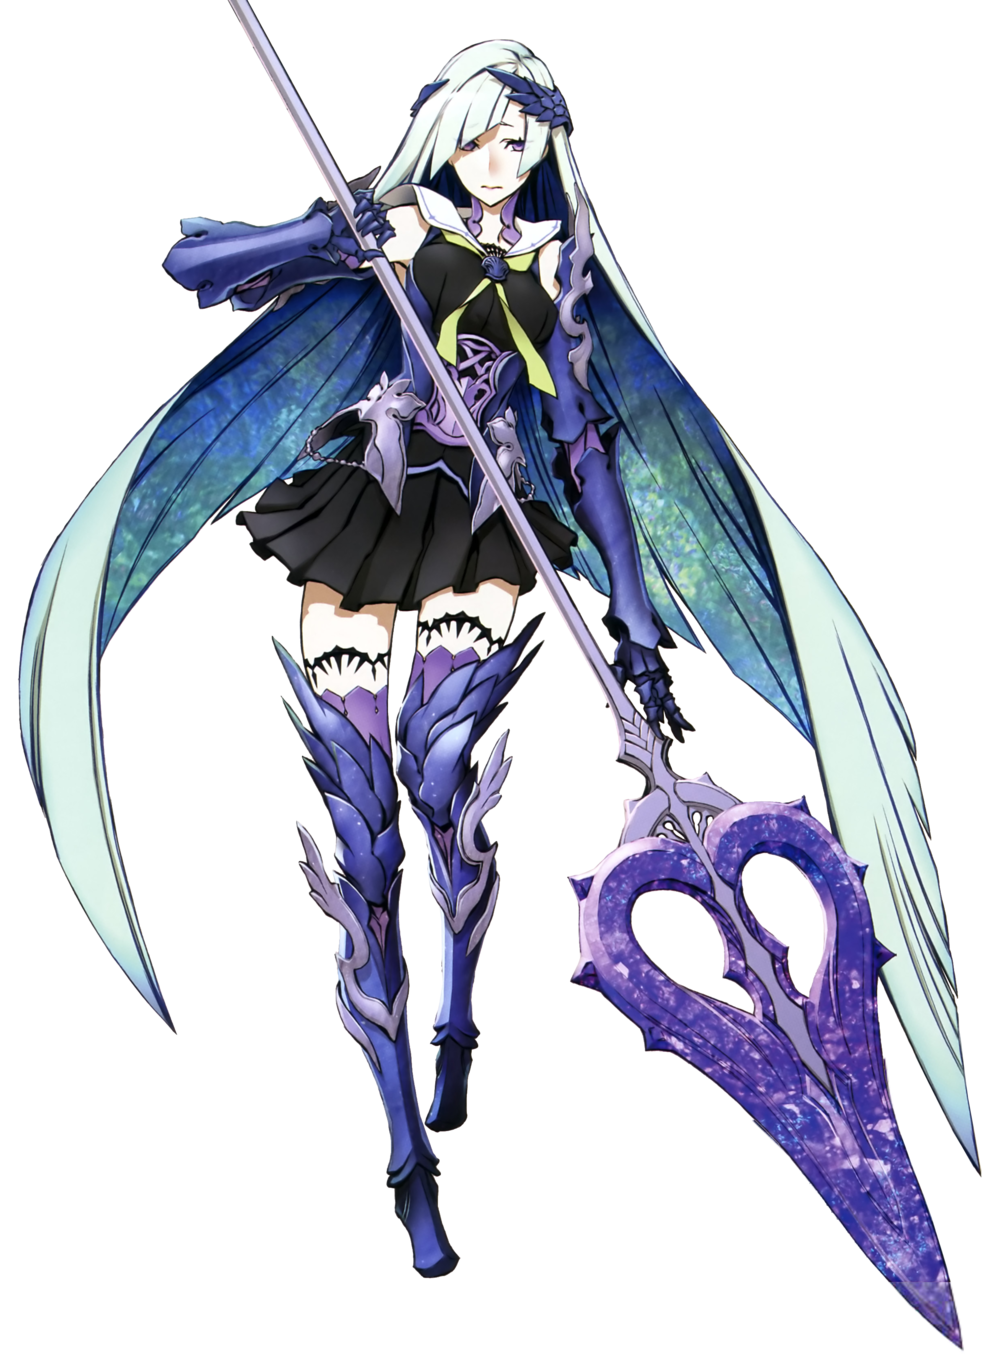 Lancer (Fate/Prototype Fragments) Anime, Character art